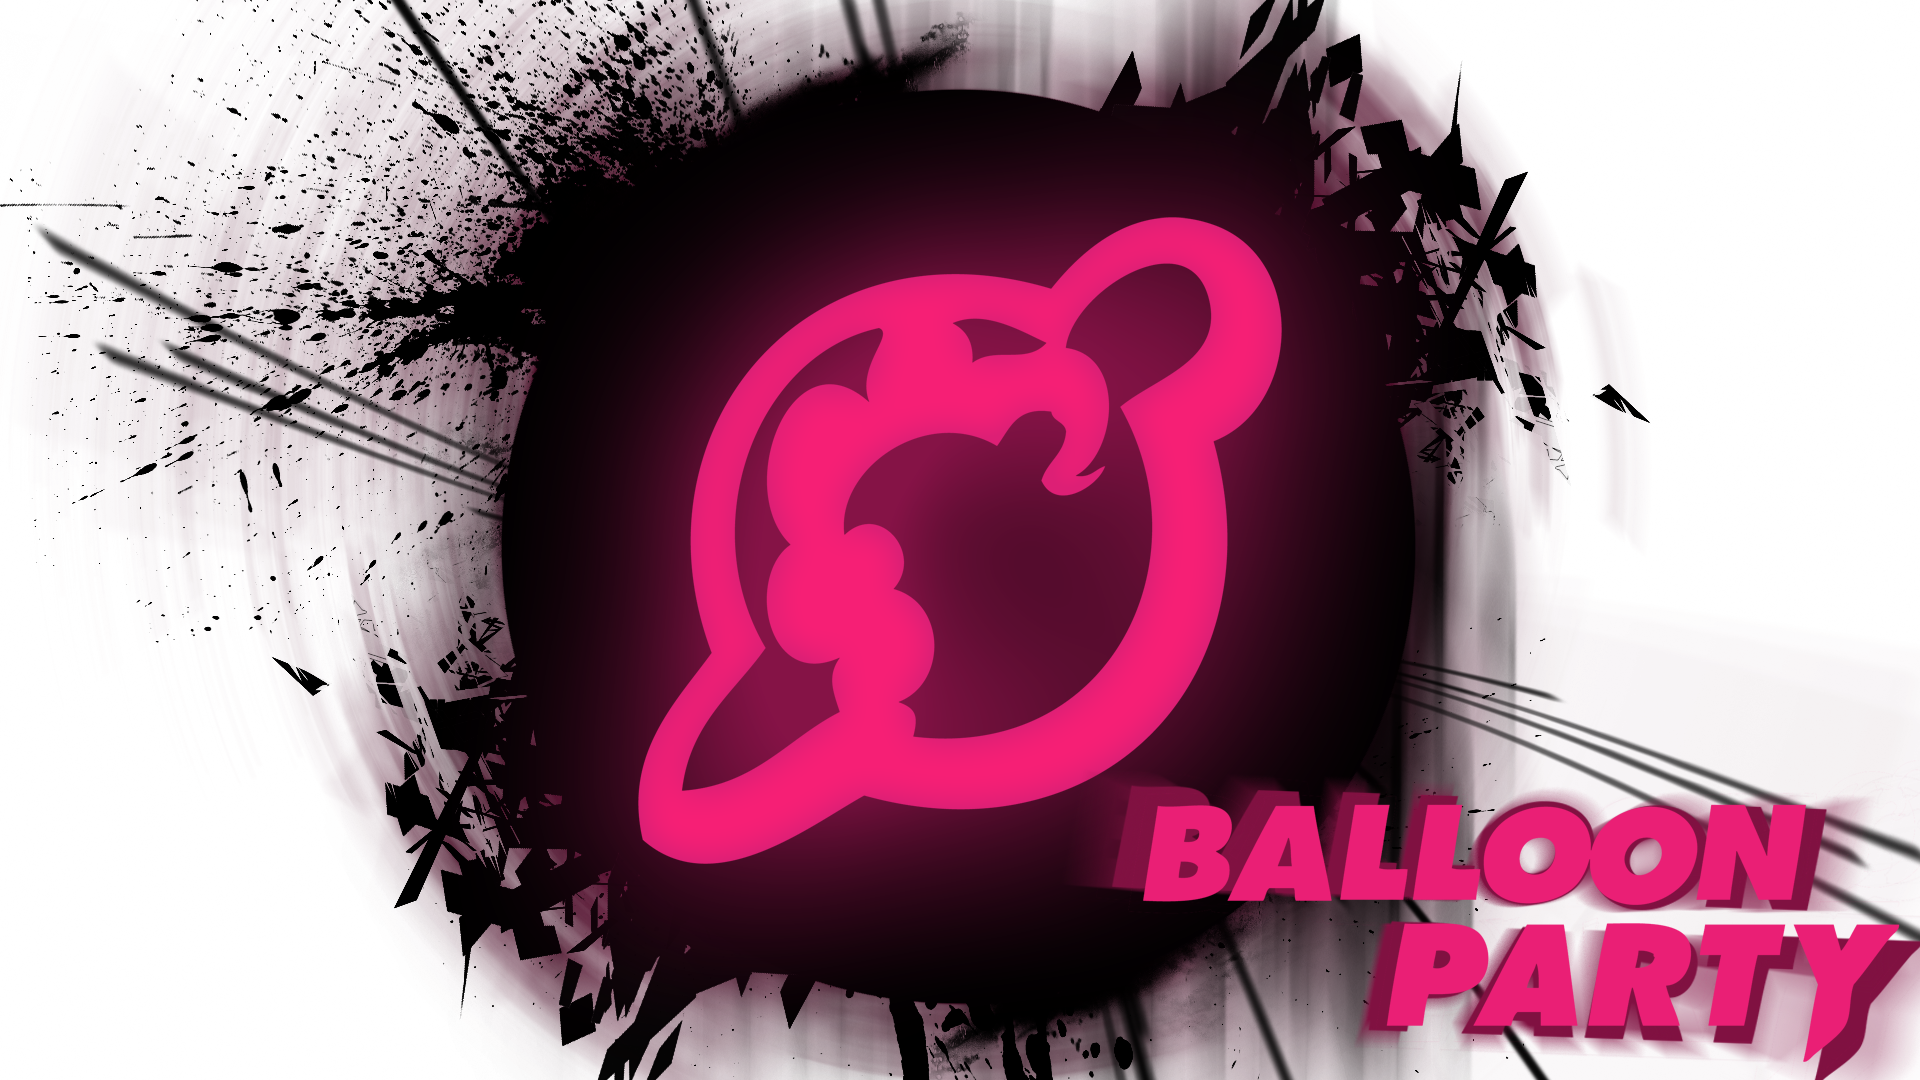 Balloon PARTY - Official Wallpaper 2 by owlet57